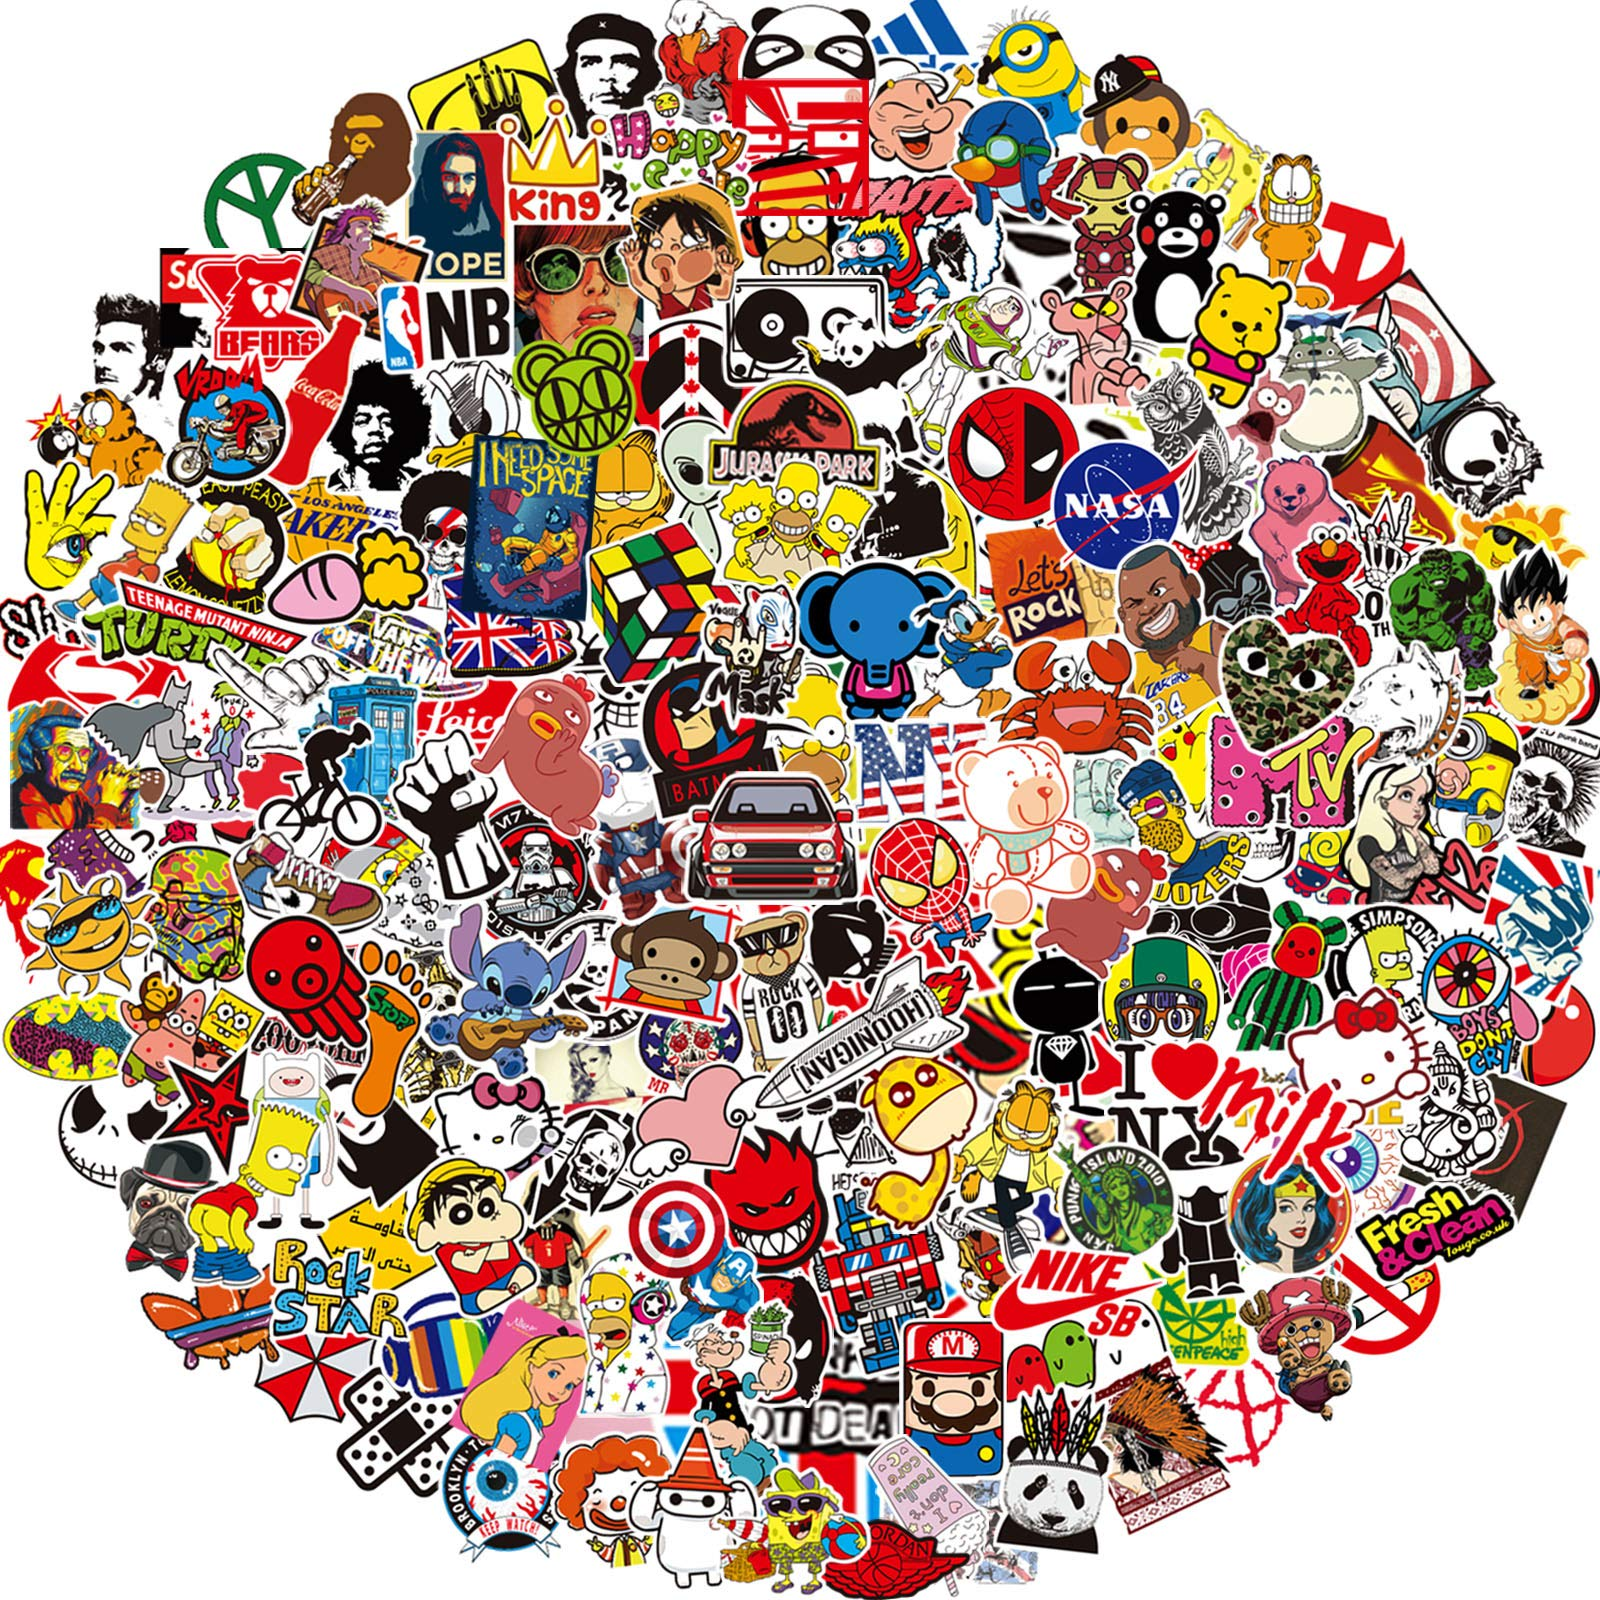 Vinyl Stickers 200 Pack Skateboard Stickers, Anime Stickers for Hydro Flask Laptop Guitar Water Bottle Car Luggage Sticker Waterproof Graffiti Decals, Gift for Kids Teens Adult…